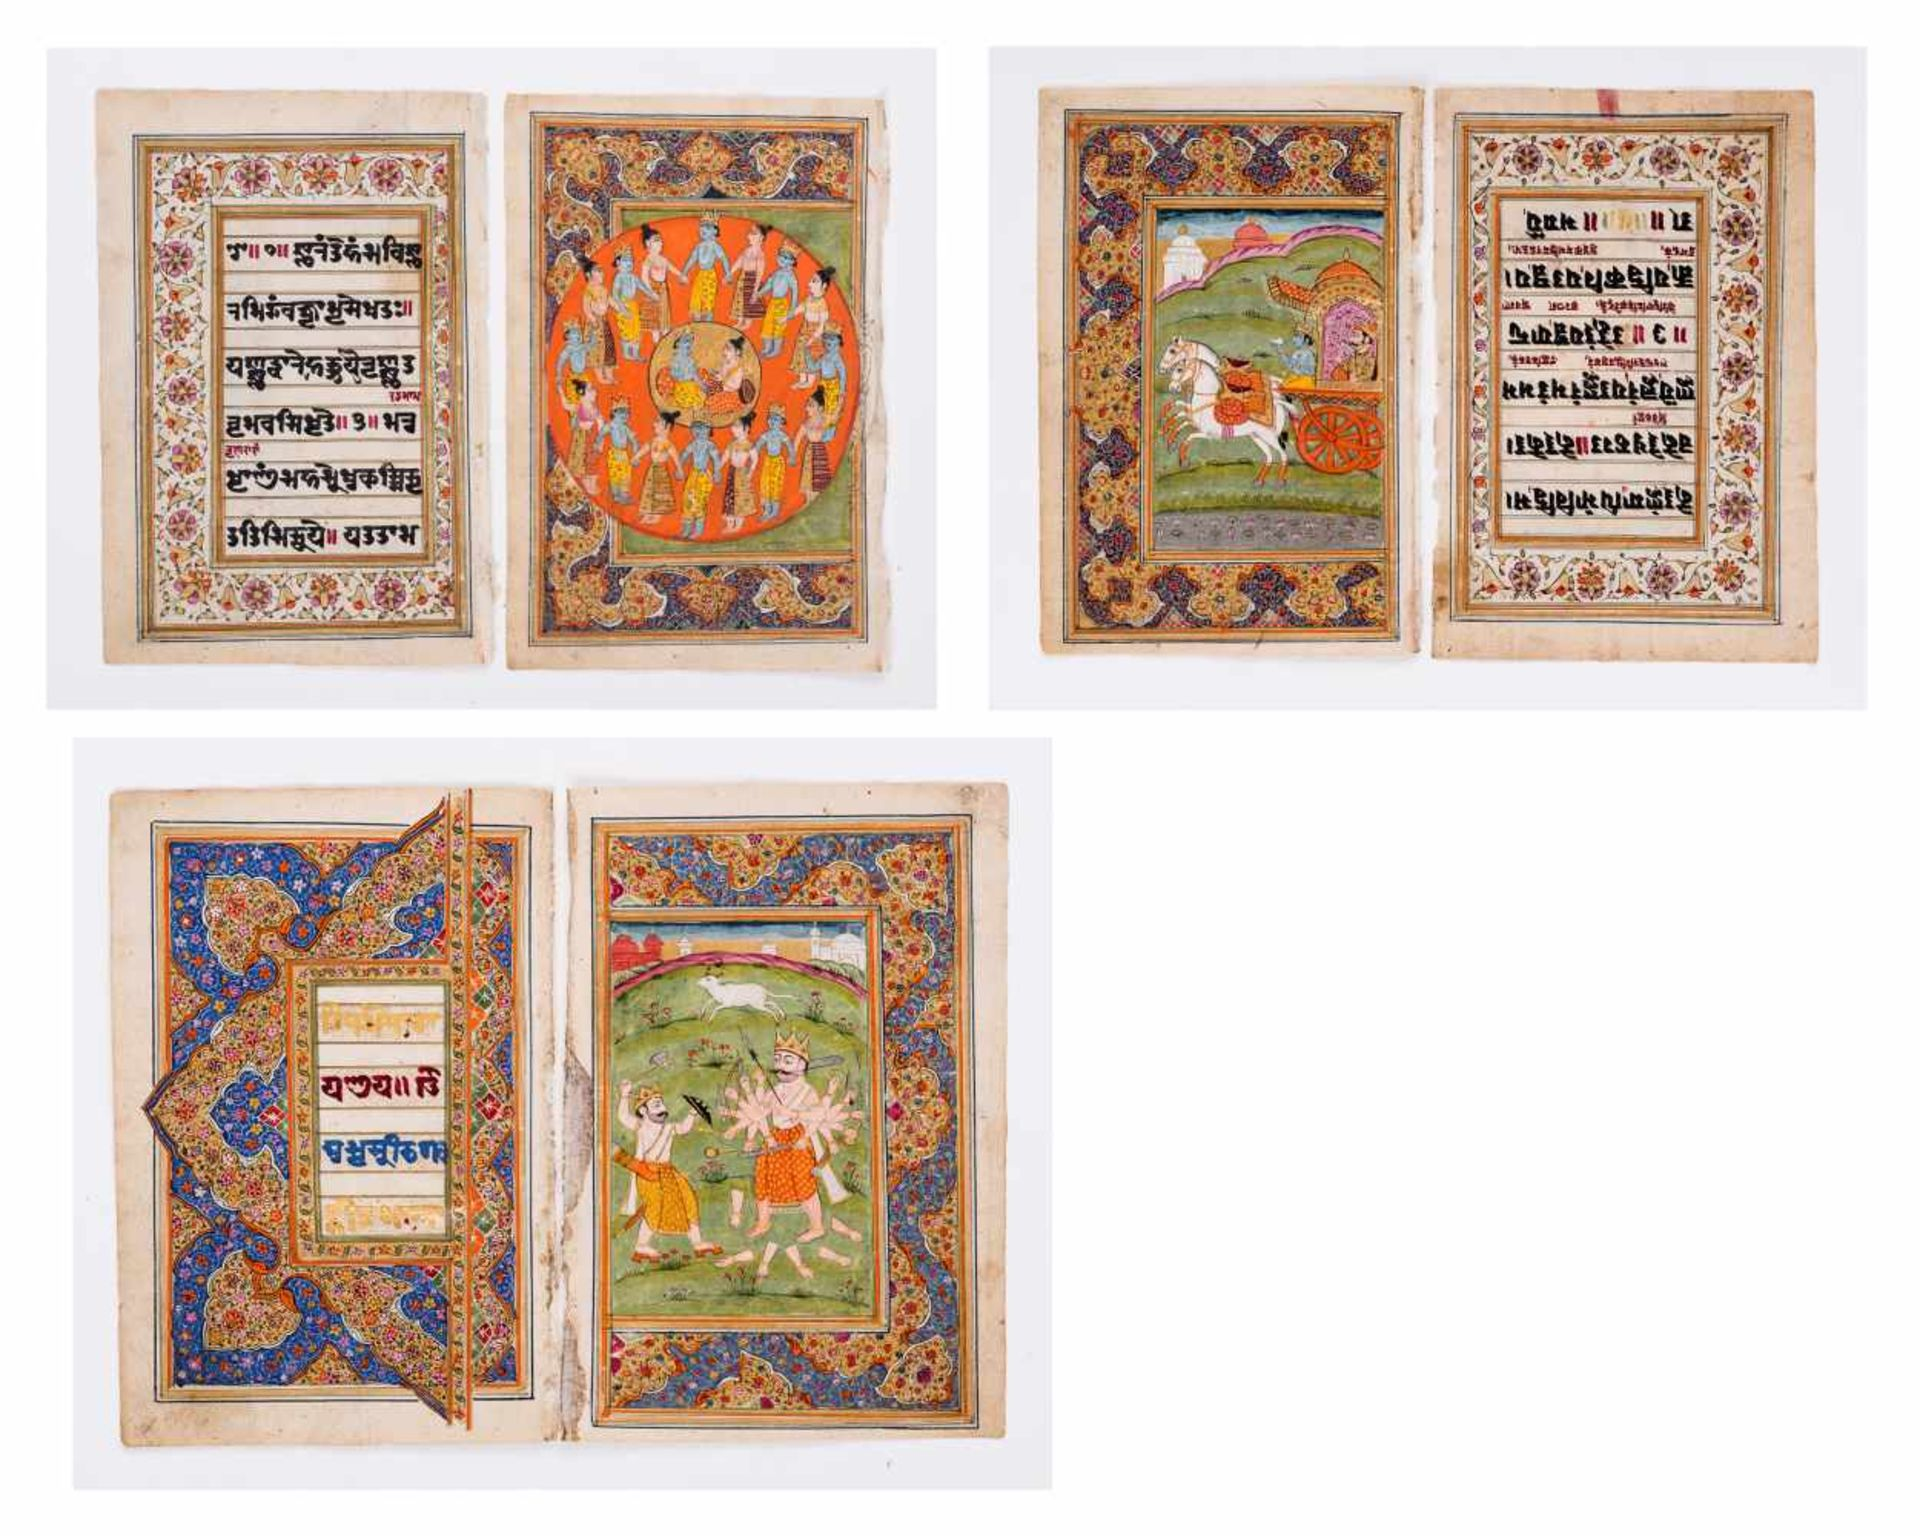 SIX MINIATURE PAINTINGS DEPICTING DEITIES - INDIA, 19th CENTURYMiniature painting with colors and